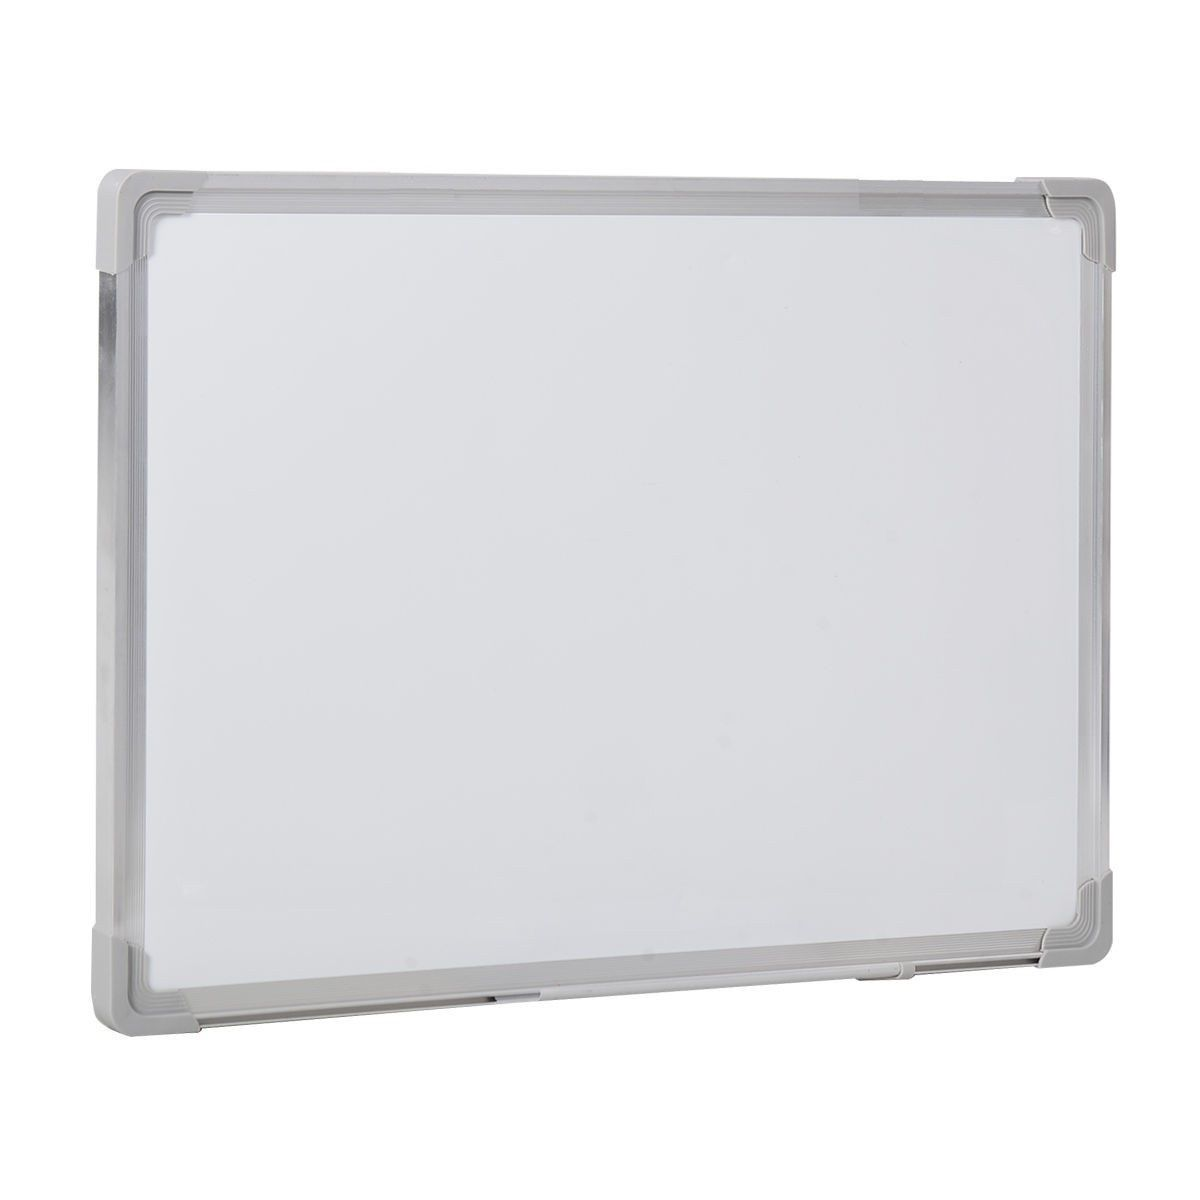 Wall Hanging Magnetic Board|Office Magnetic Dry Erase Wipe